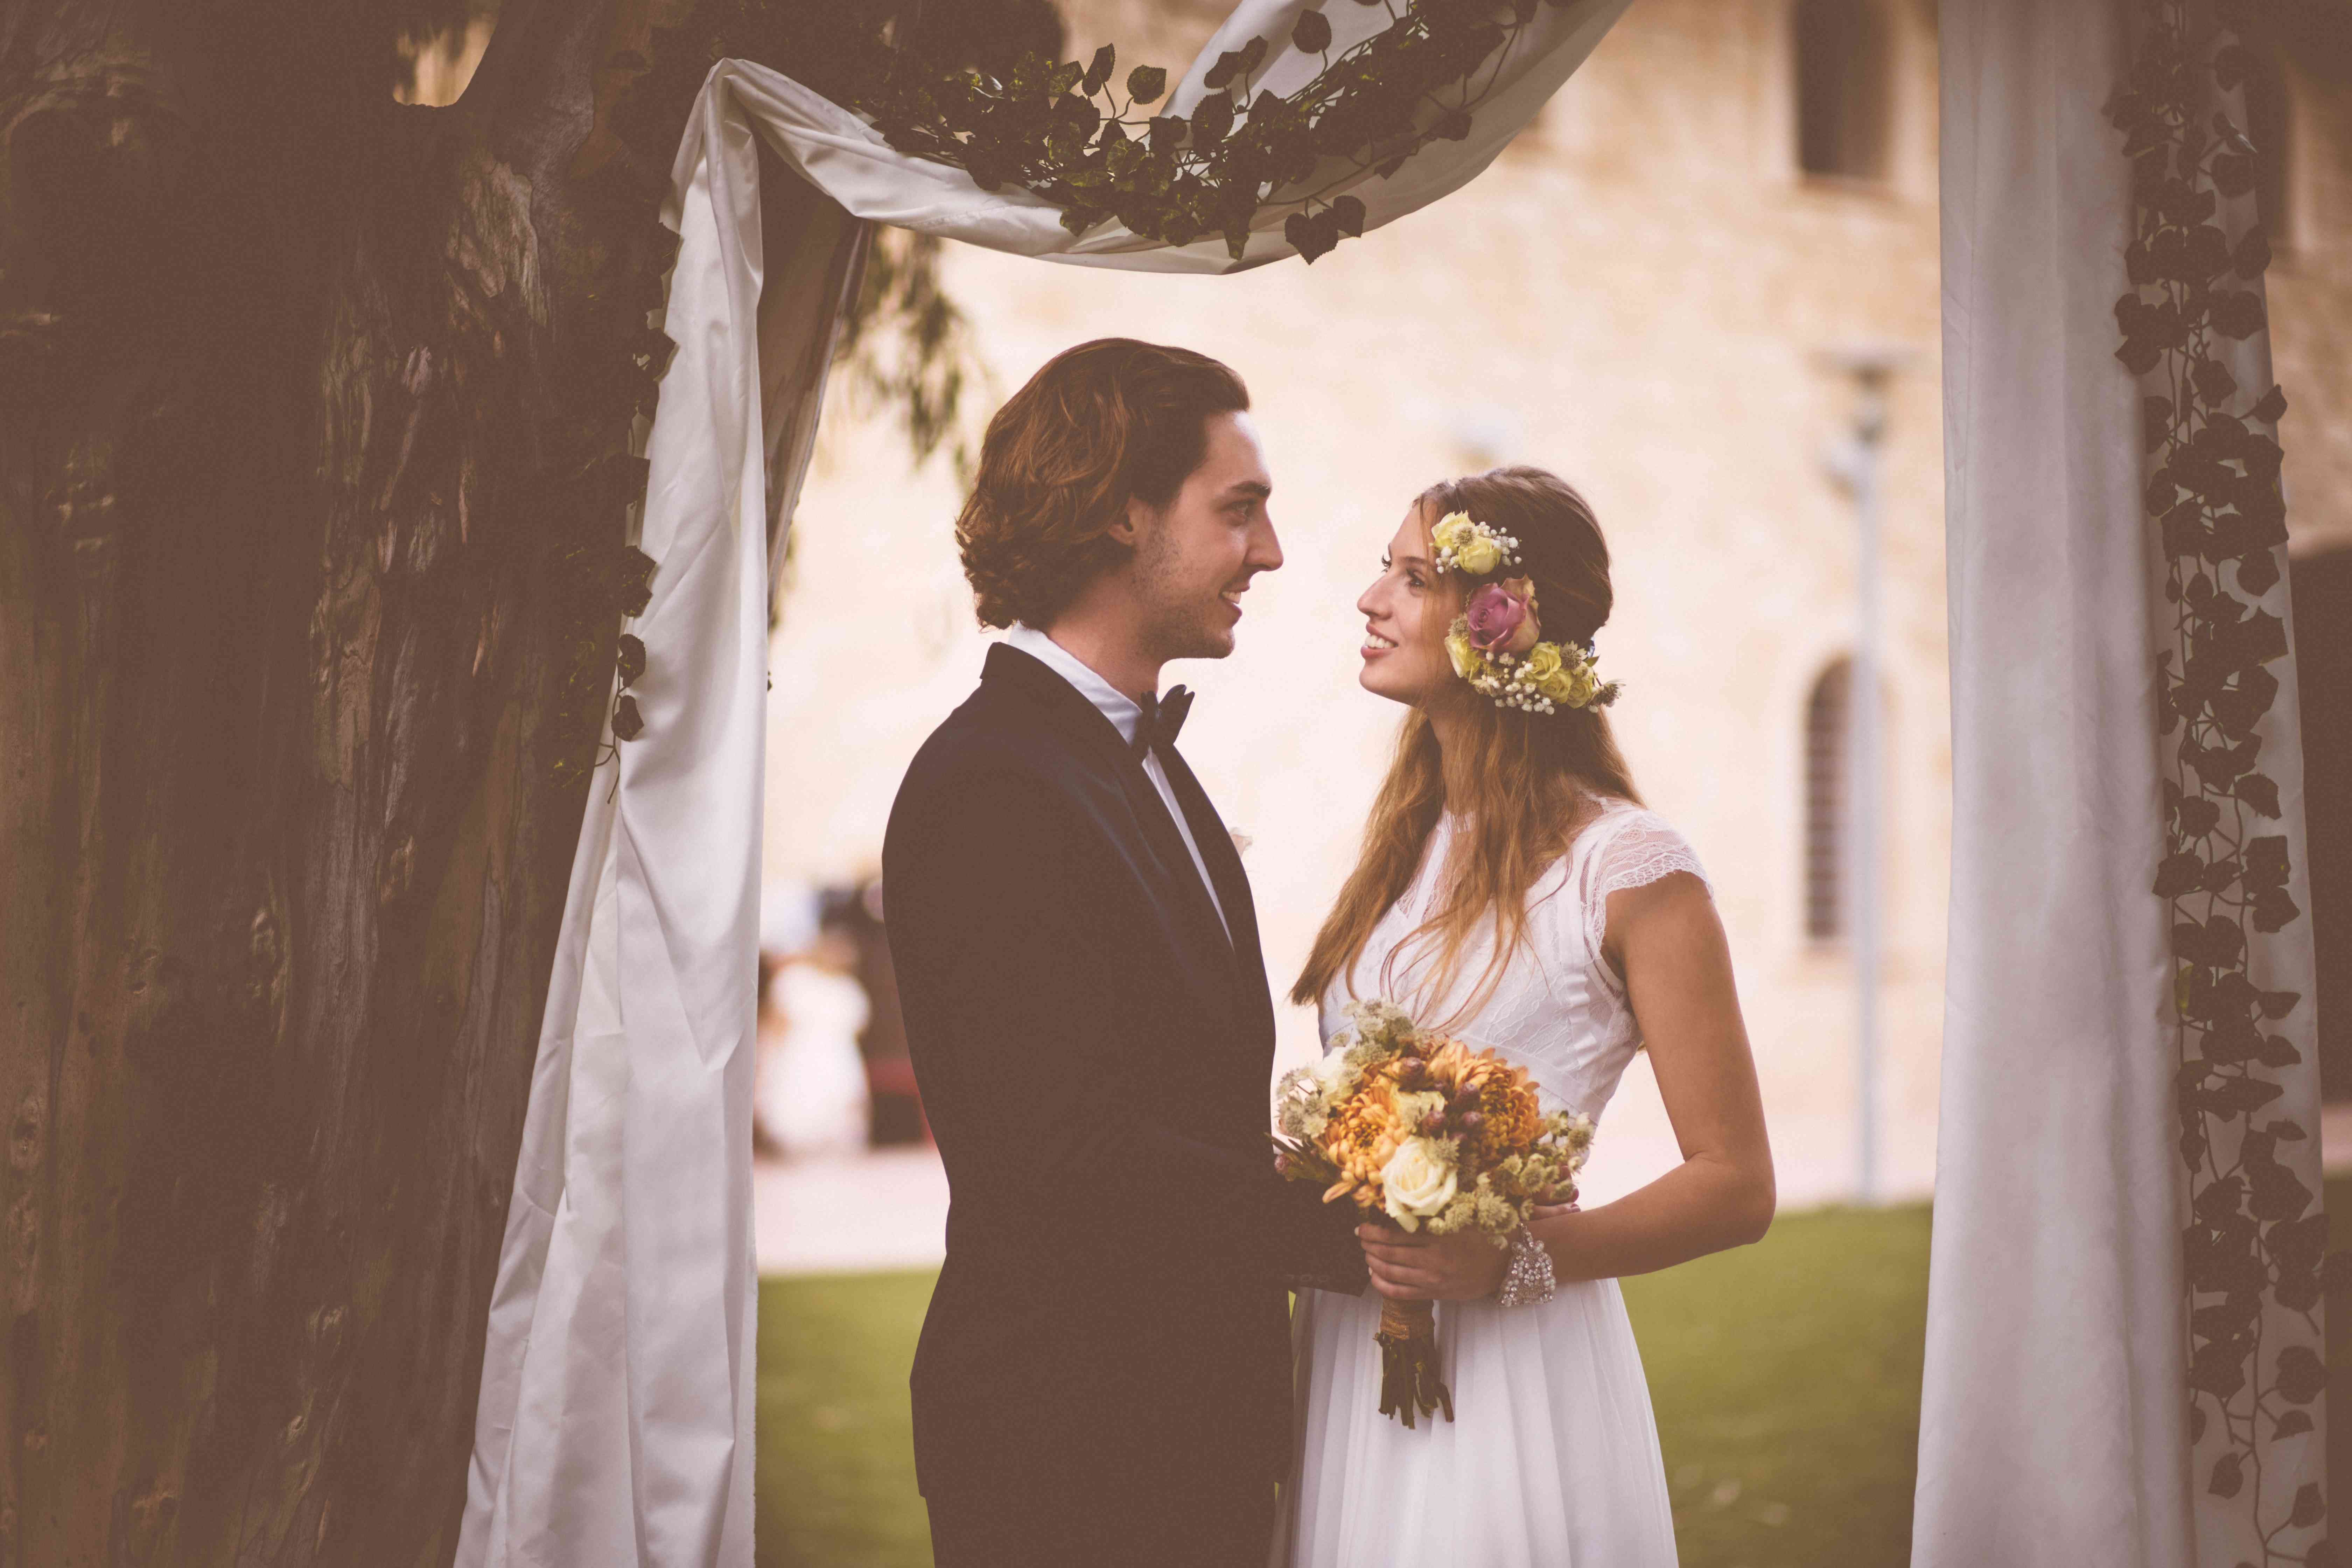 Bride and groom standing together at beautiful garden wedding ceremony